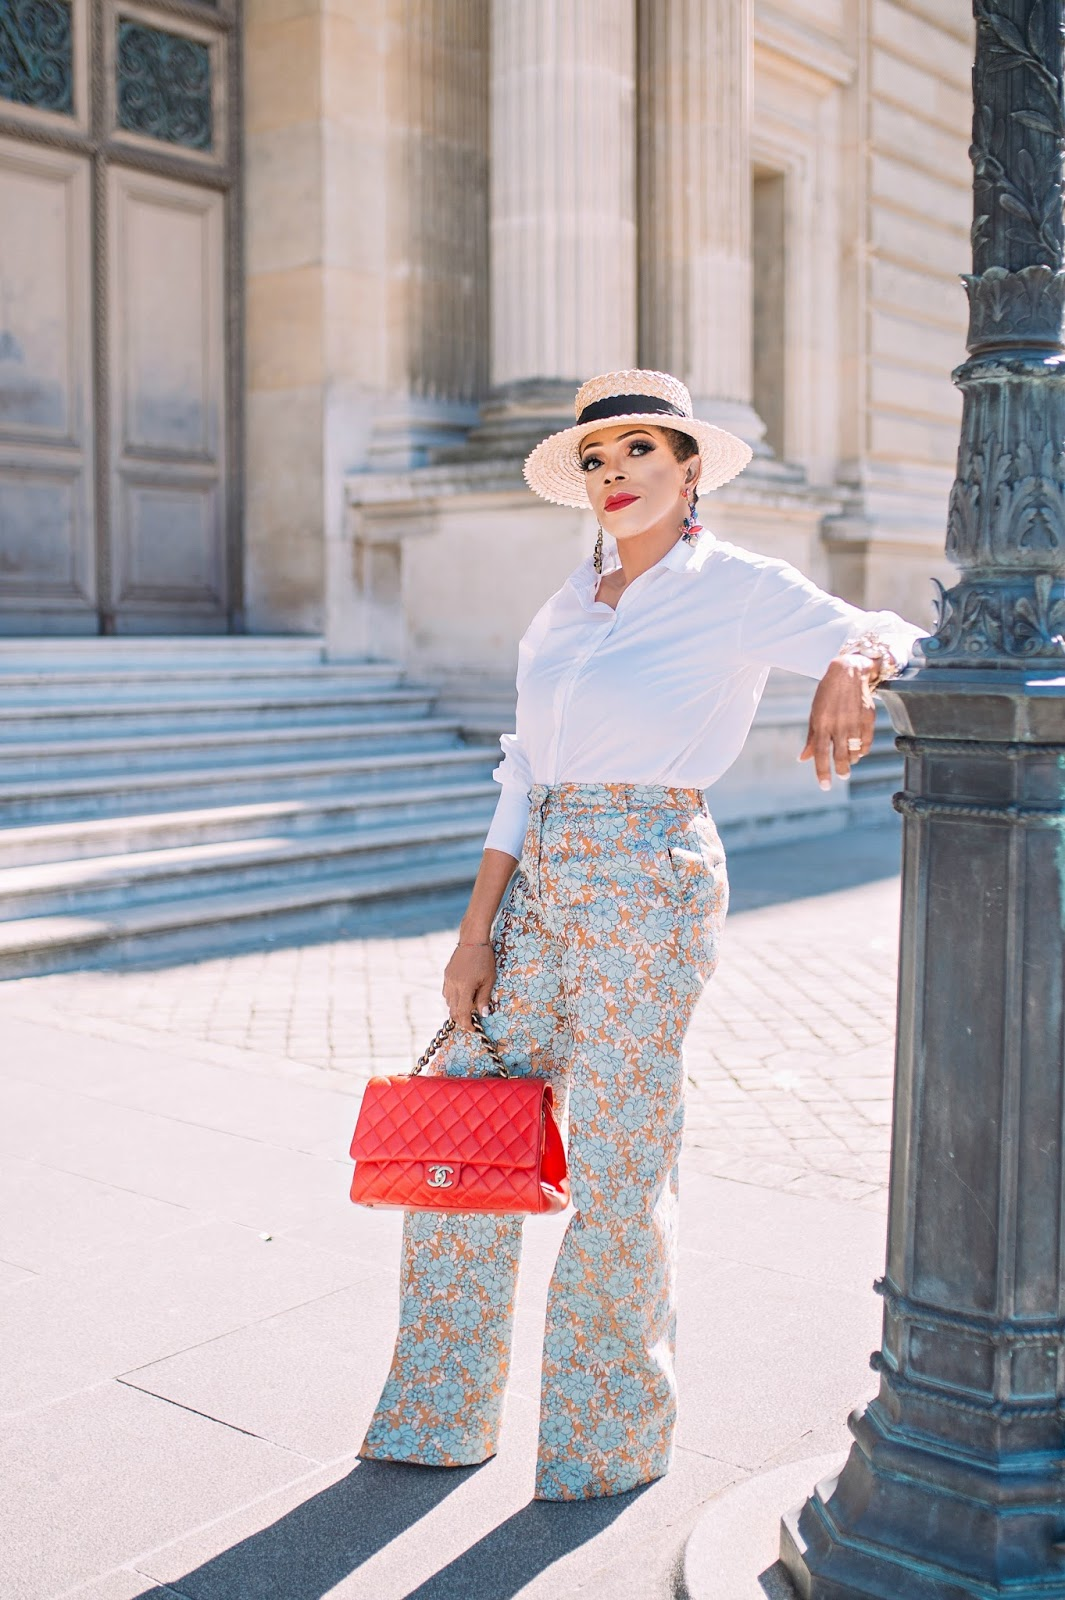 Floral jacquard pants with classic white pants and boater hat